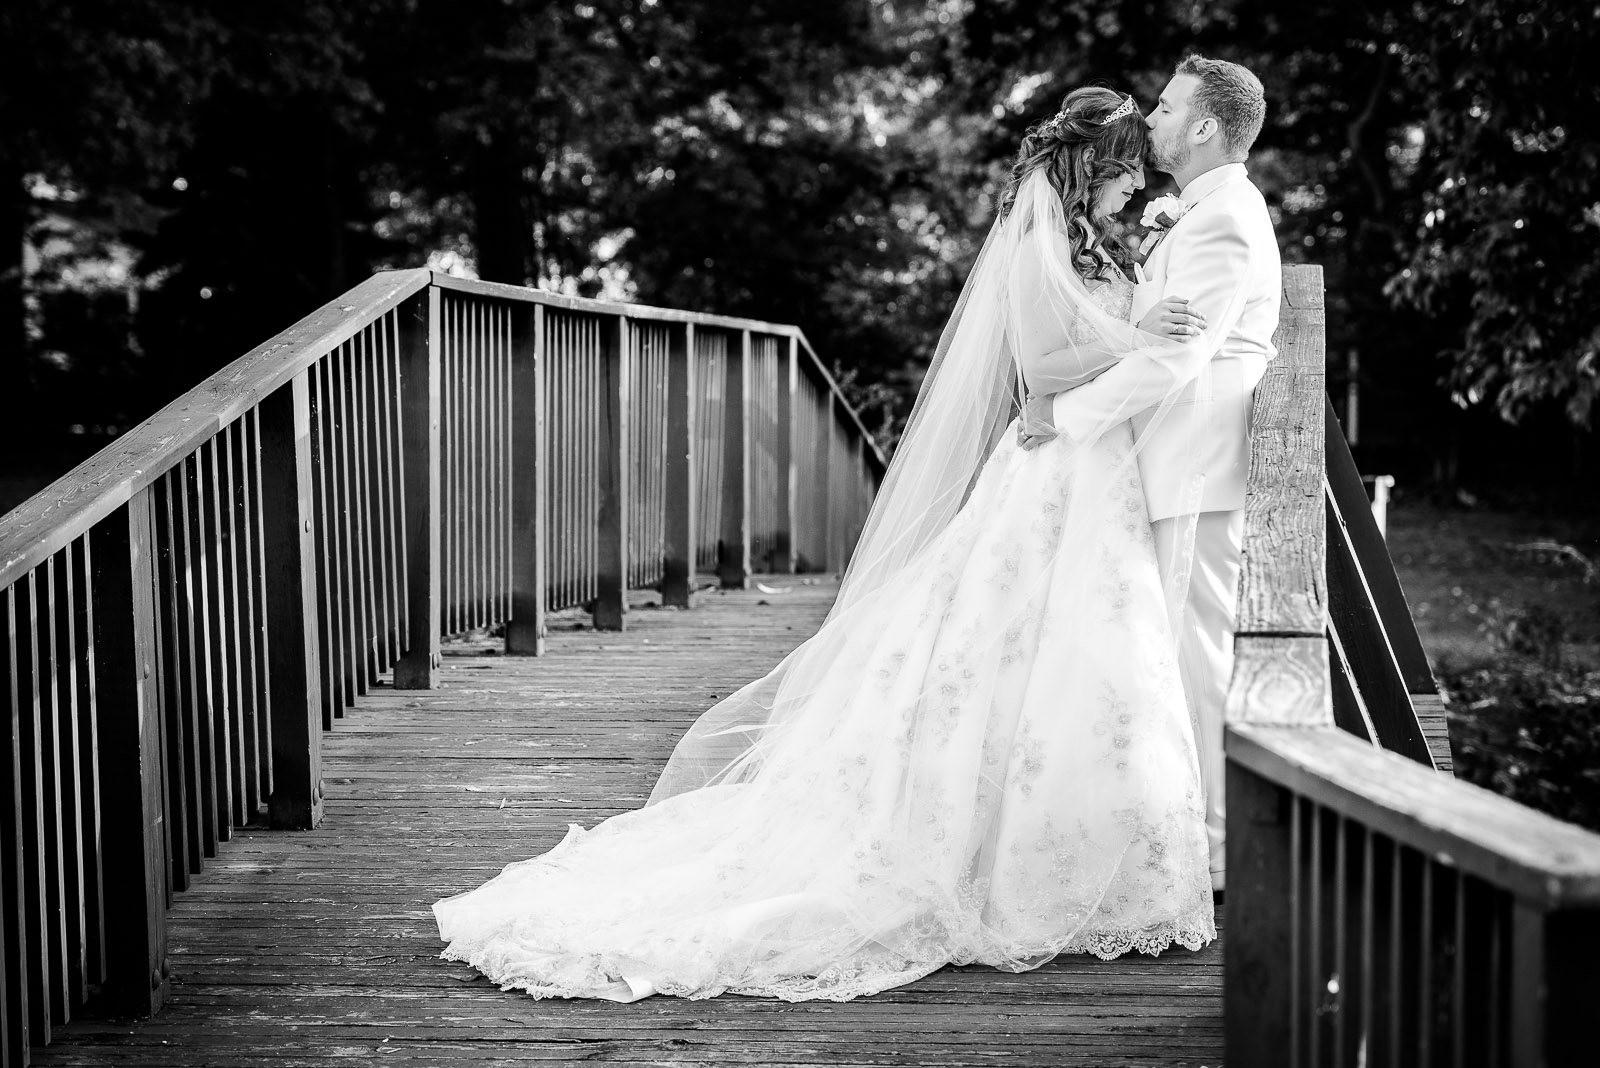 Eric_and_Christy_Photography_Blog_Wedding_Eva_Andrew-42